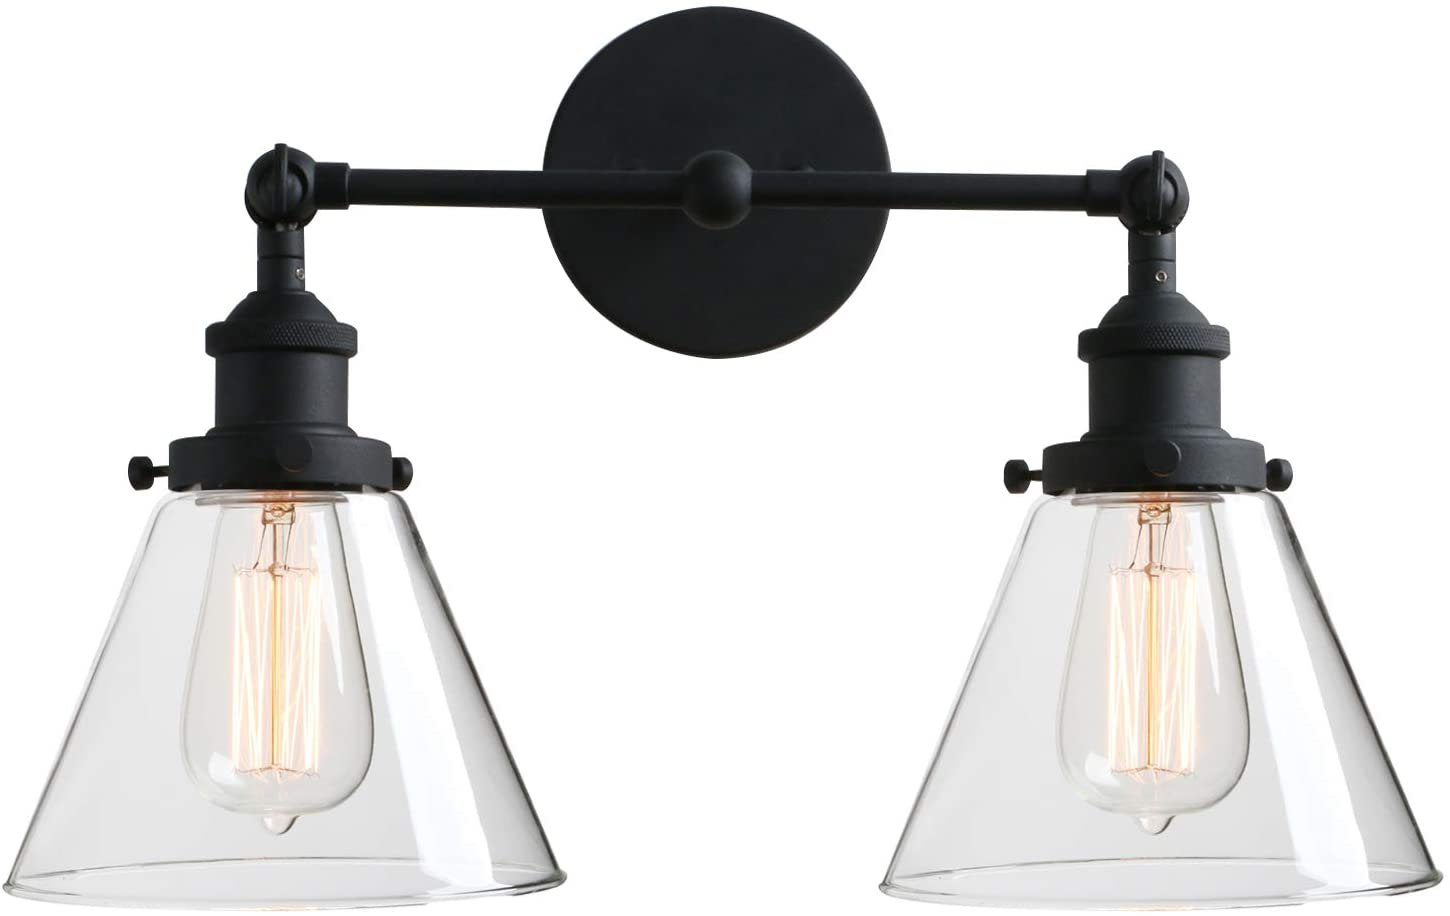 Phansthy 2-Light Industrial Wall Light Antique Sconce Light Fixture with 7.3 Inches Clear Glass Flared Shade (2-Light Clear)